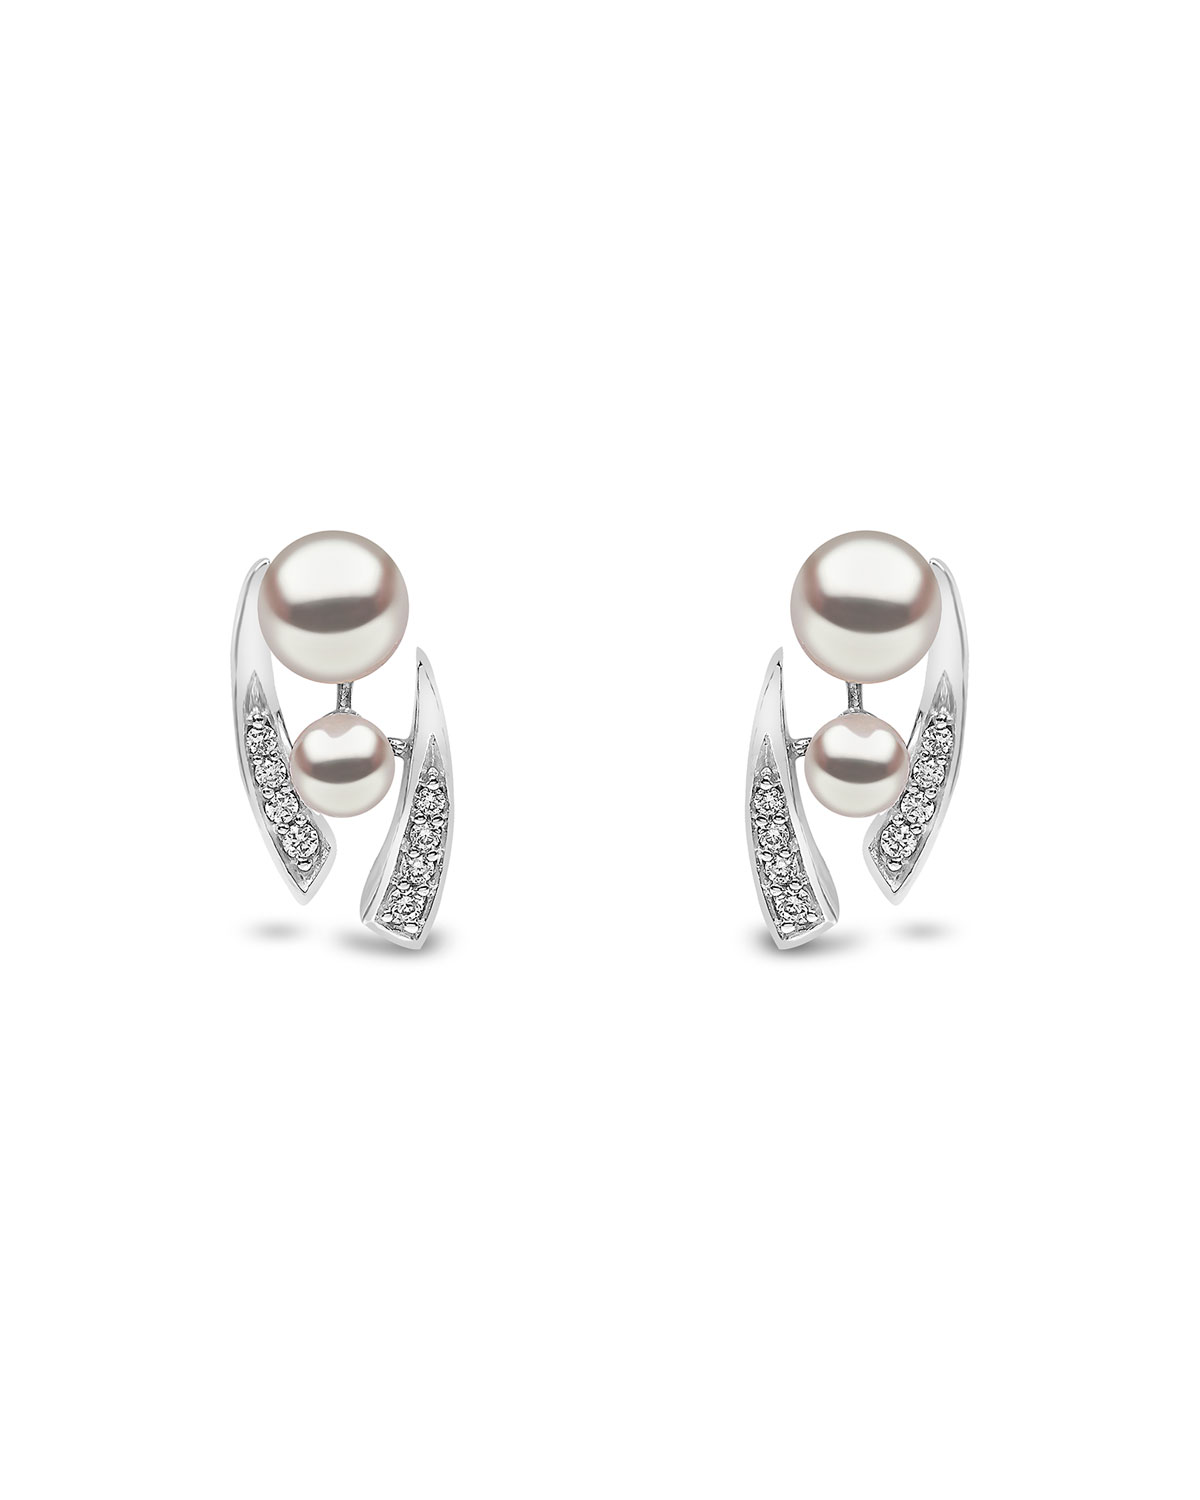 YOKO LONDON 18K White Gold Pearl & Tapered Diamond Stud Earrings